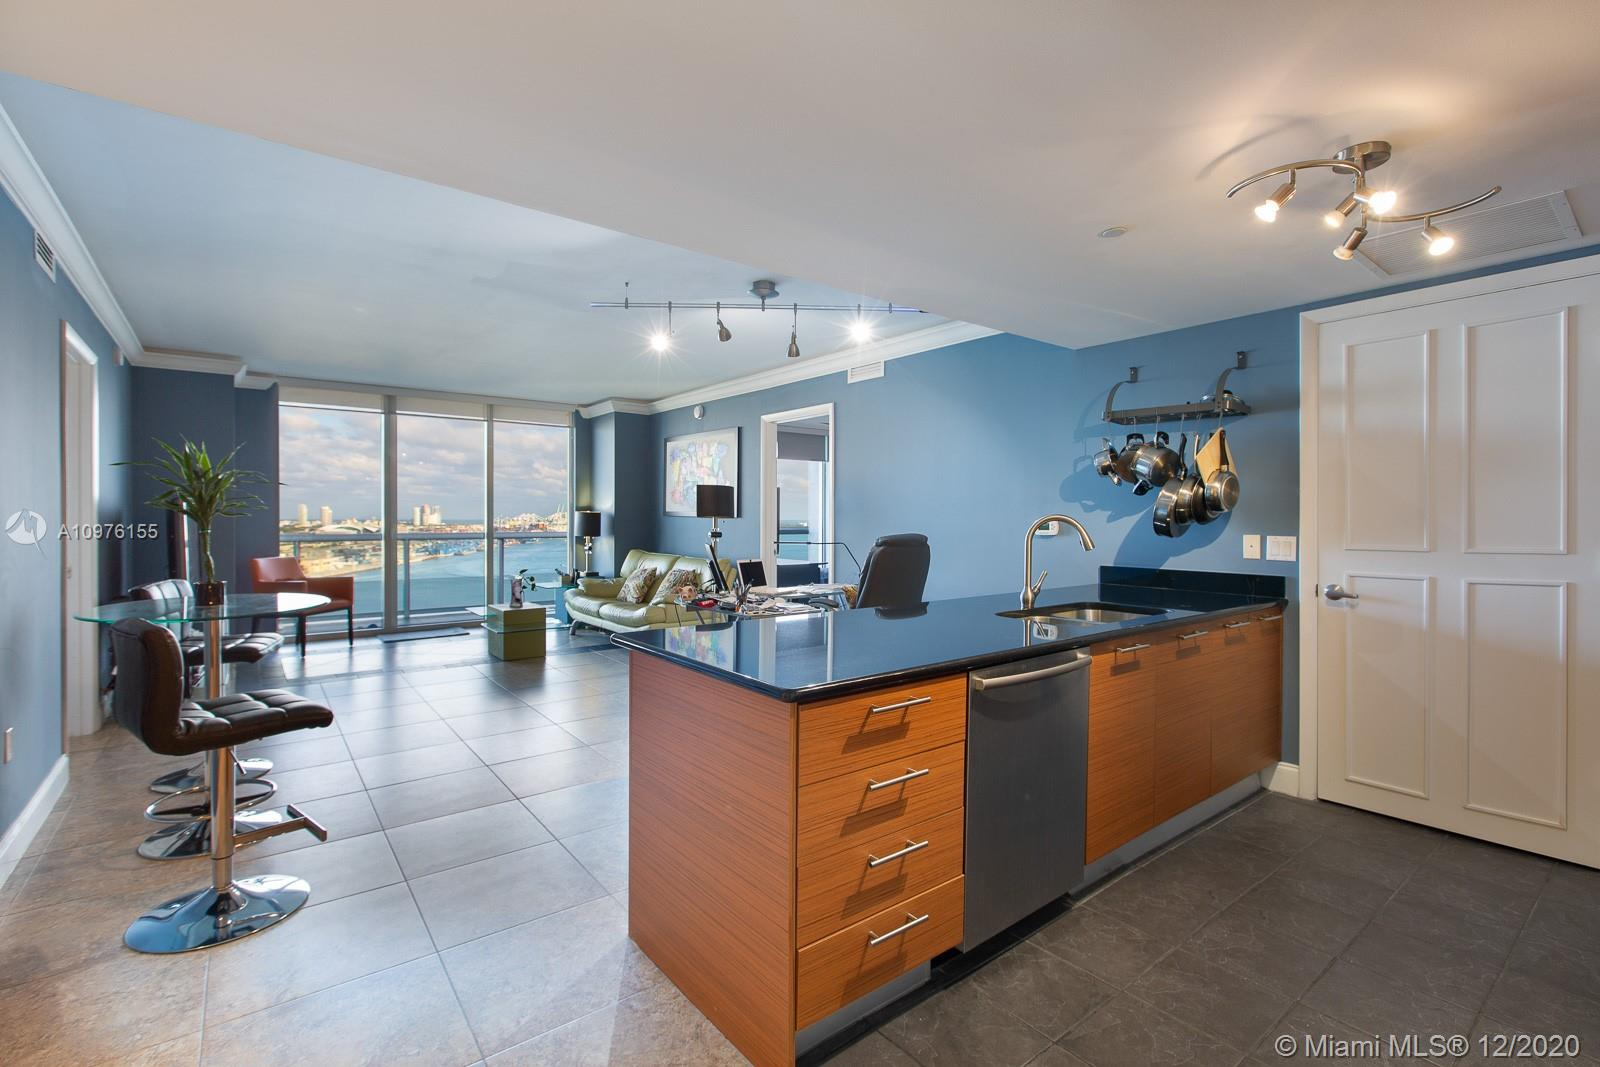 Enjoy beautiful city and bay views from your balcony at 50 Biscayne. This large 2/2 bedroom has an open kitchen with stainless steel appliances, W/D in the apt, comes with one assigned parking space and building offers valet service as well. 50 Biscayne Condominium is a unique residential tower designed by Sieger Suarez with interiors by David Rockwell. The building offers a secured lobby with 24hr front desk service, resort amenities including a 3 story lobby, club room with kitchen and billiards, 10th floor pool with cabanas/daybeds, 2 level fitness center and spa center offering gym, mediation and Pilates room. Walking distance to American Airlines Arena, Bayside, Brickell CIty Centre, restaurants and shopping!